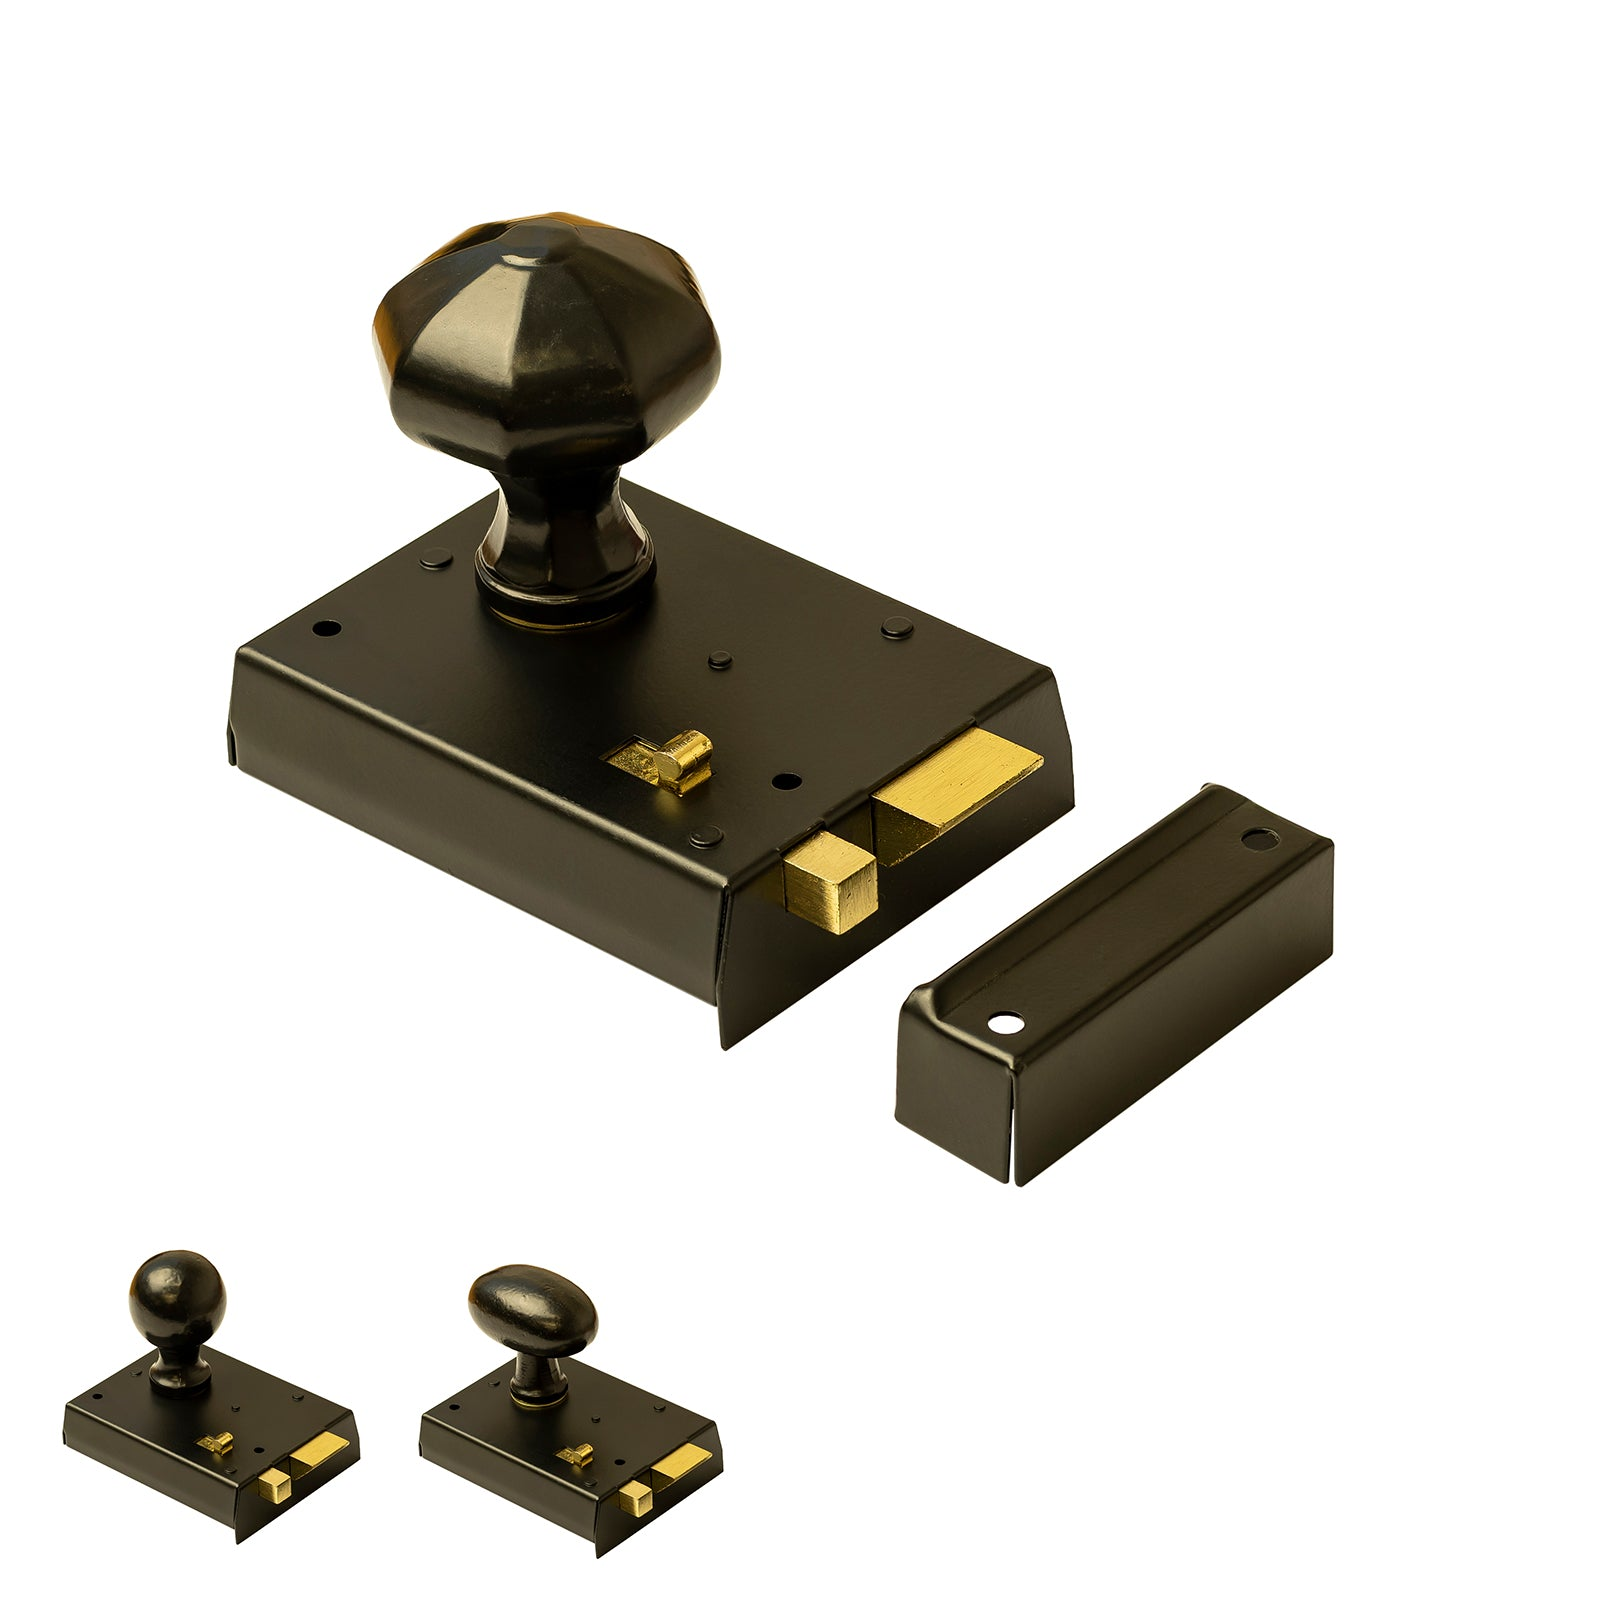 Bathroom Rim Lock with Snib Black Cast Iron Door Knob Set